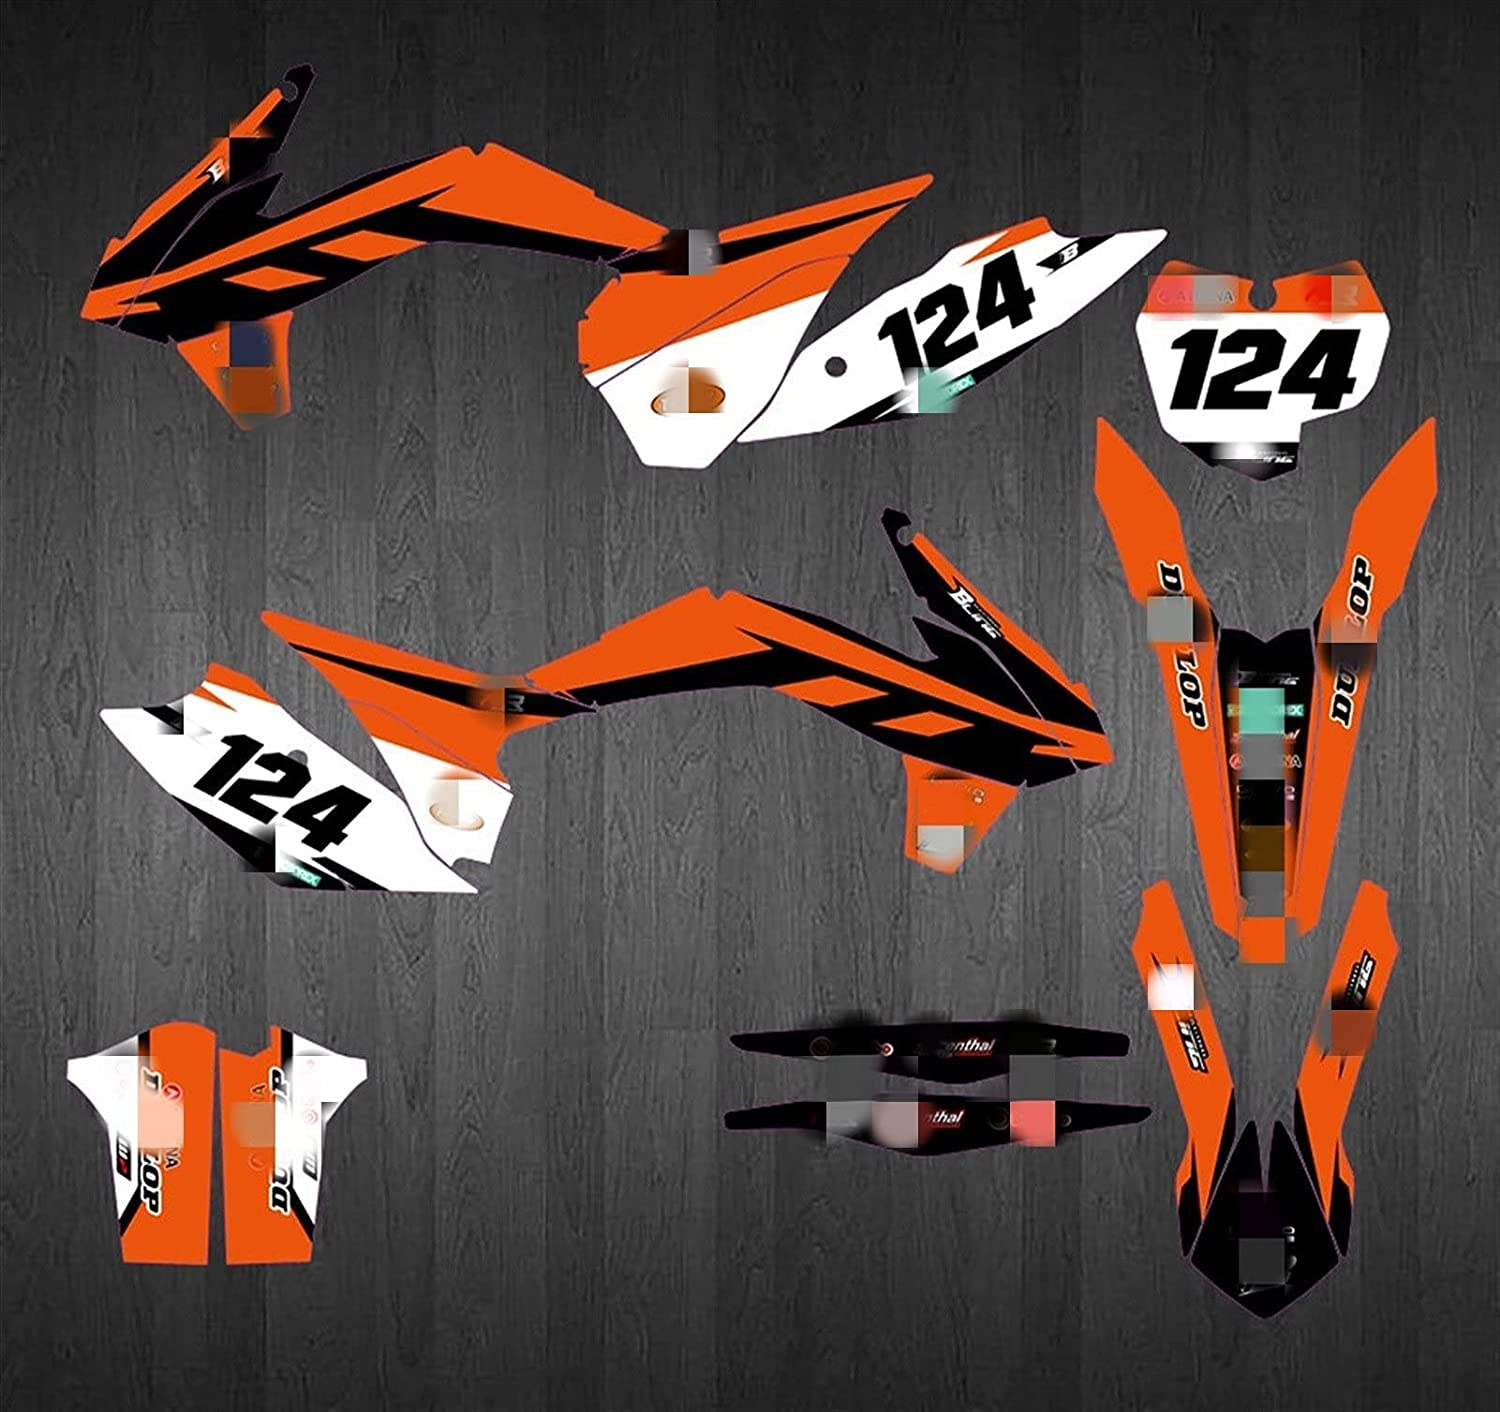 Max 65% OFF cheap Lhtyouting CH0331E8-3 Customized 3M G Motorcycle Decals Stickers